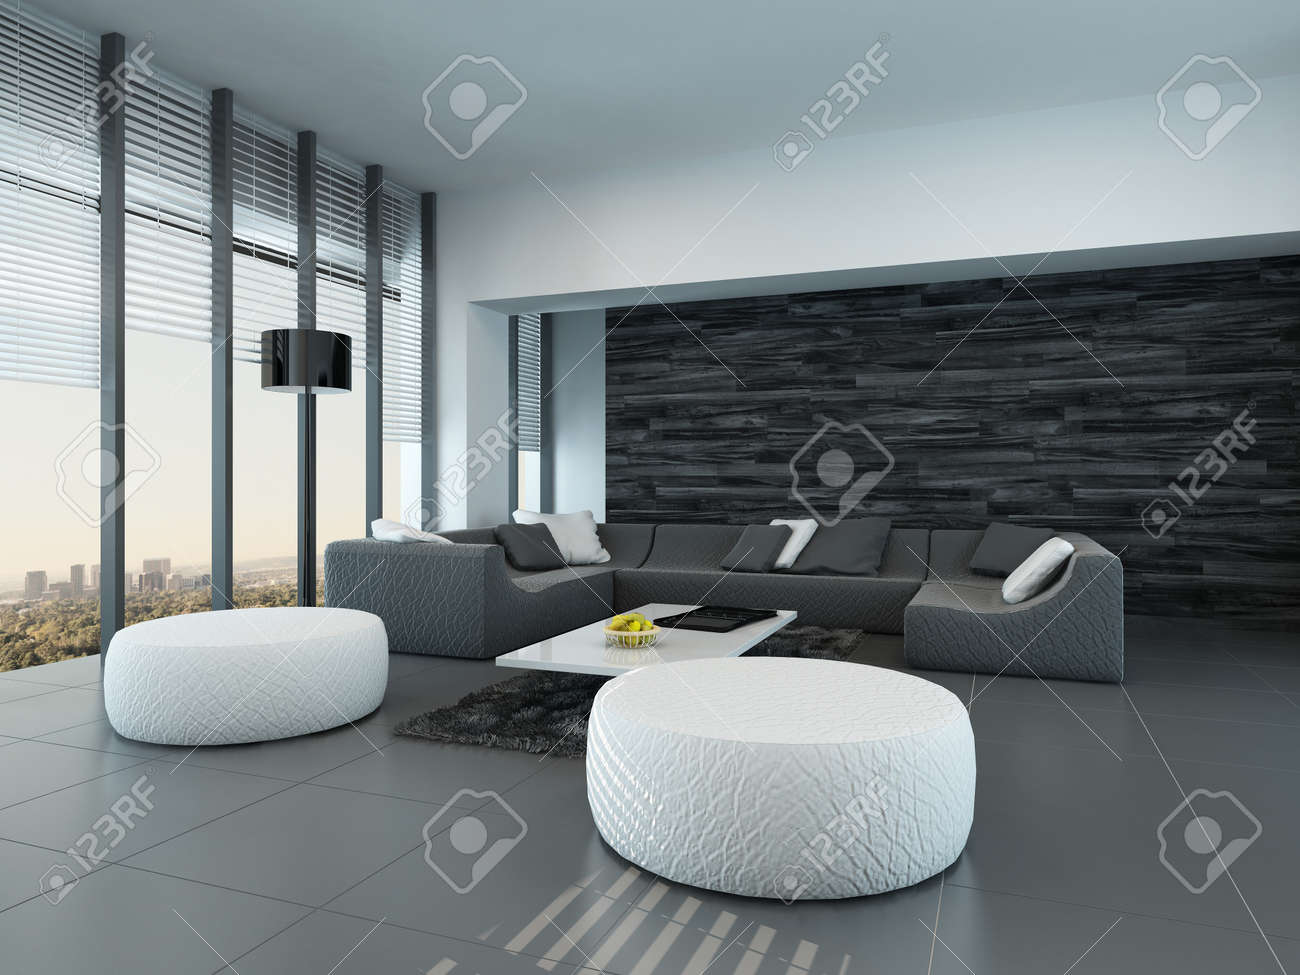 Tilted Perspective Of A Modern Grey And White Living Room Interior